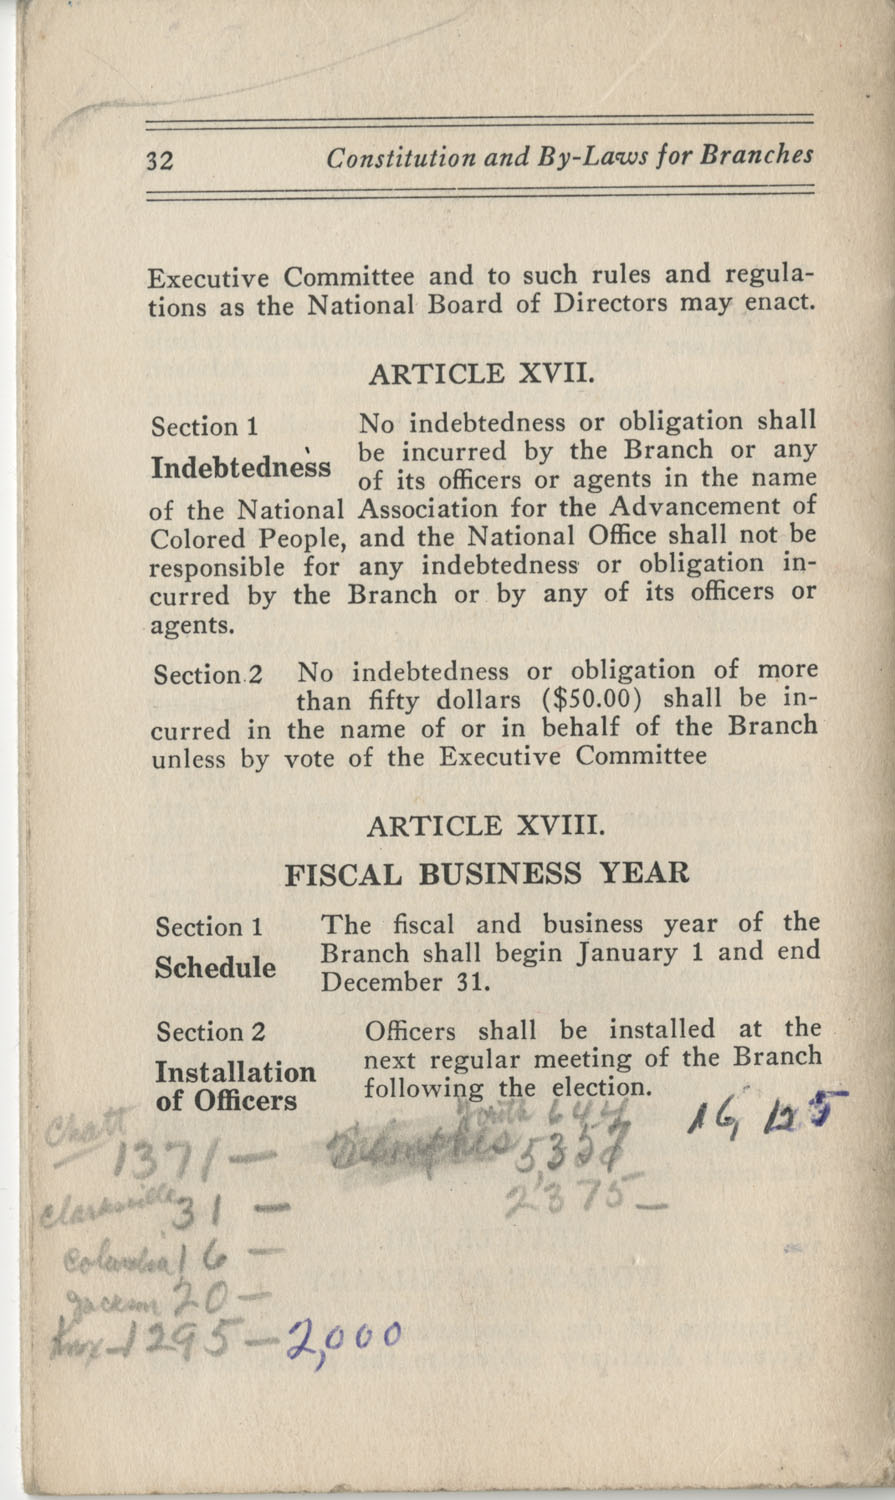 Constitutions and By-Laws, September 1960, Page 32